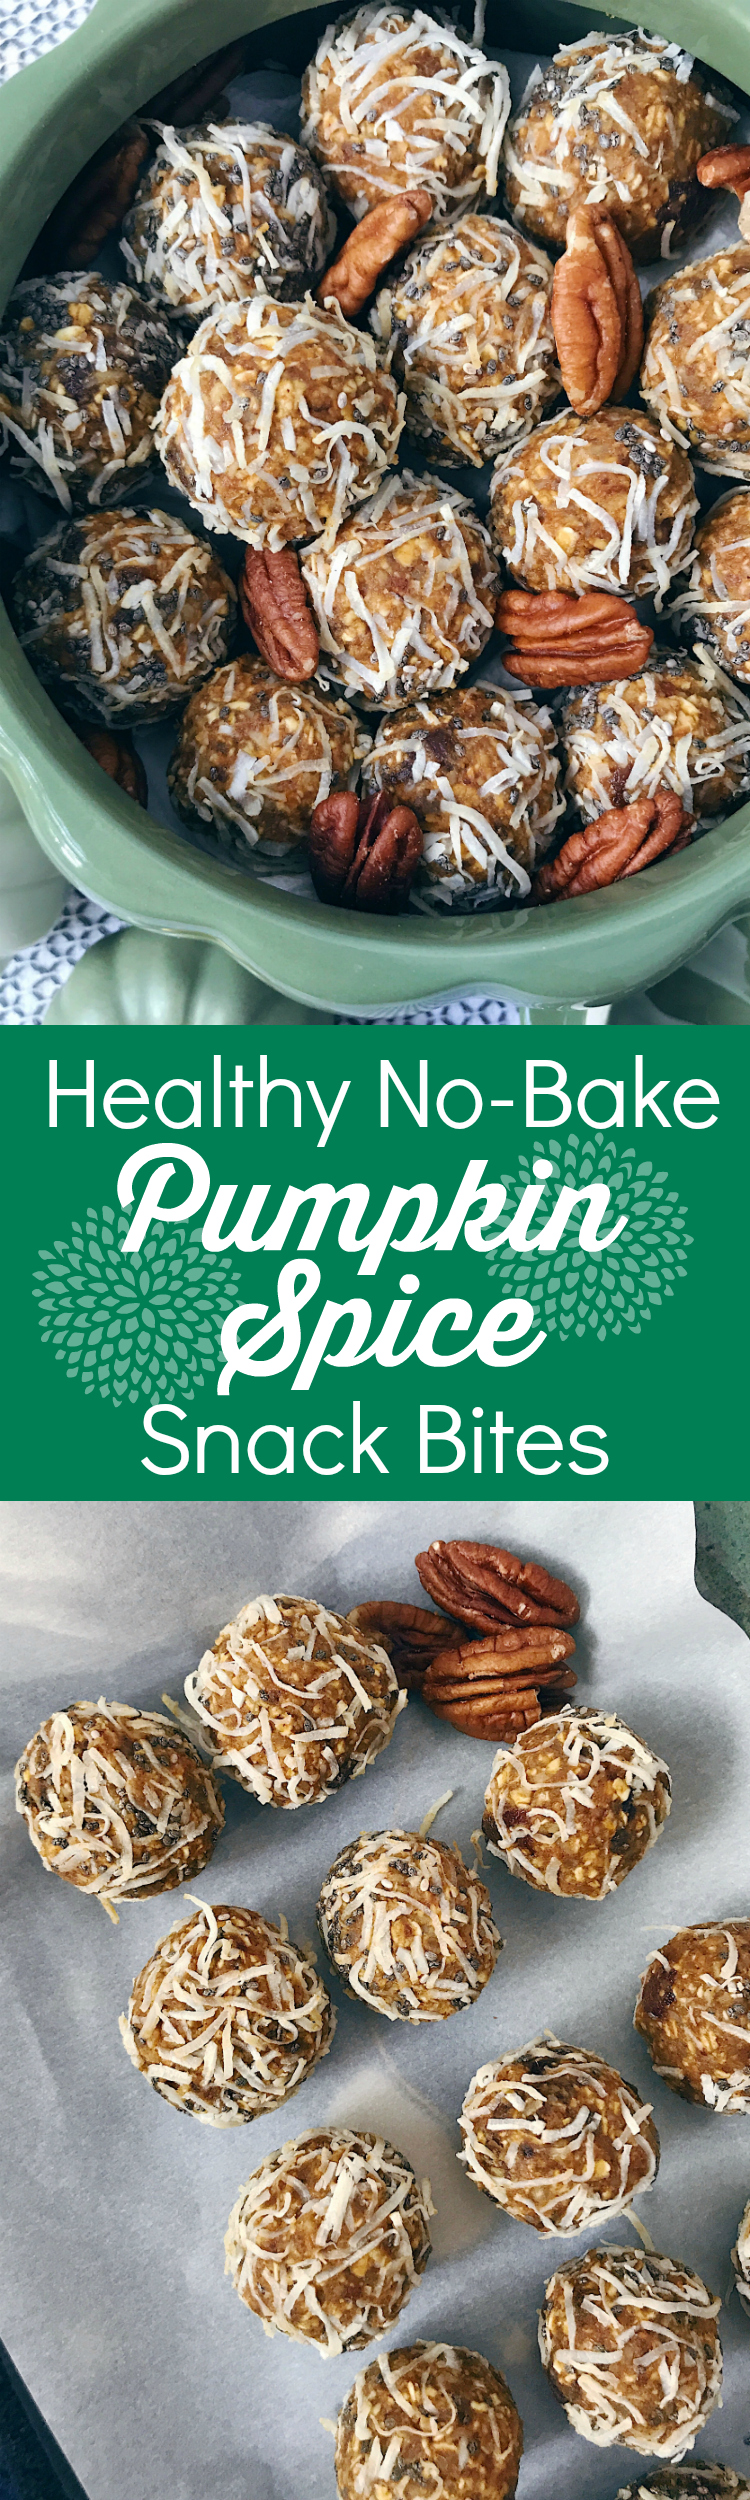 No-Bake Pumpkin Spice Snack Bites are a healthy grab-and-go breakfast or snack that is chalk full of fiber, whole grains and your favorite fall flavors.